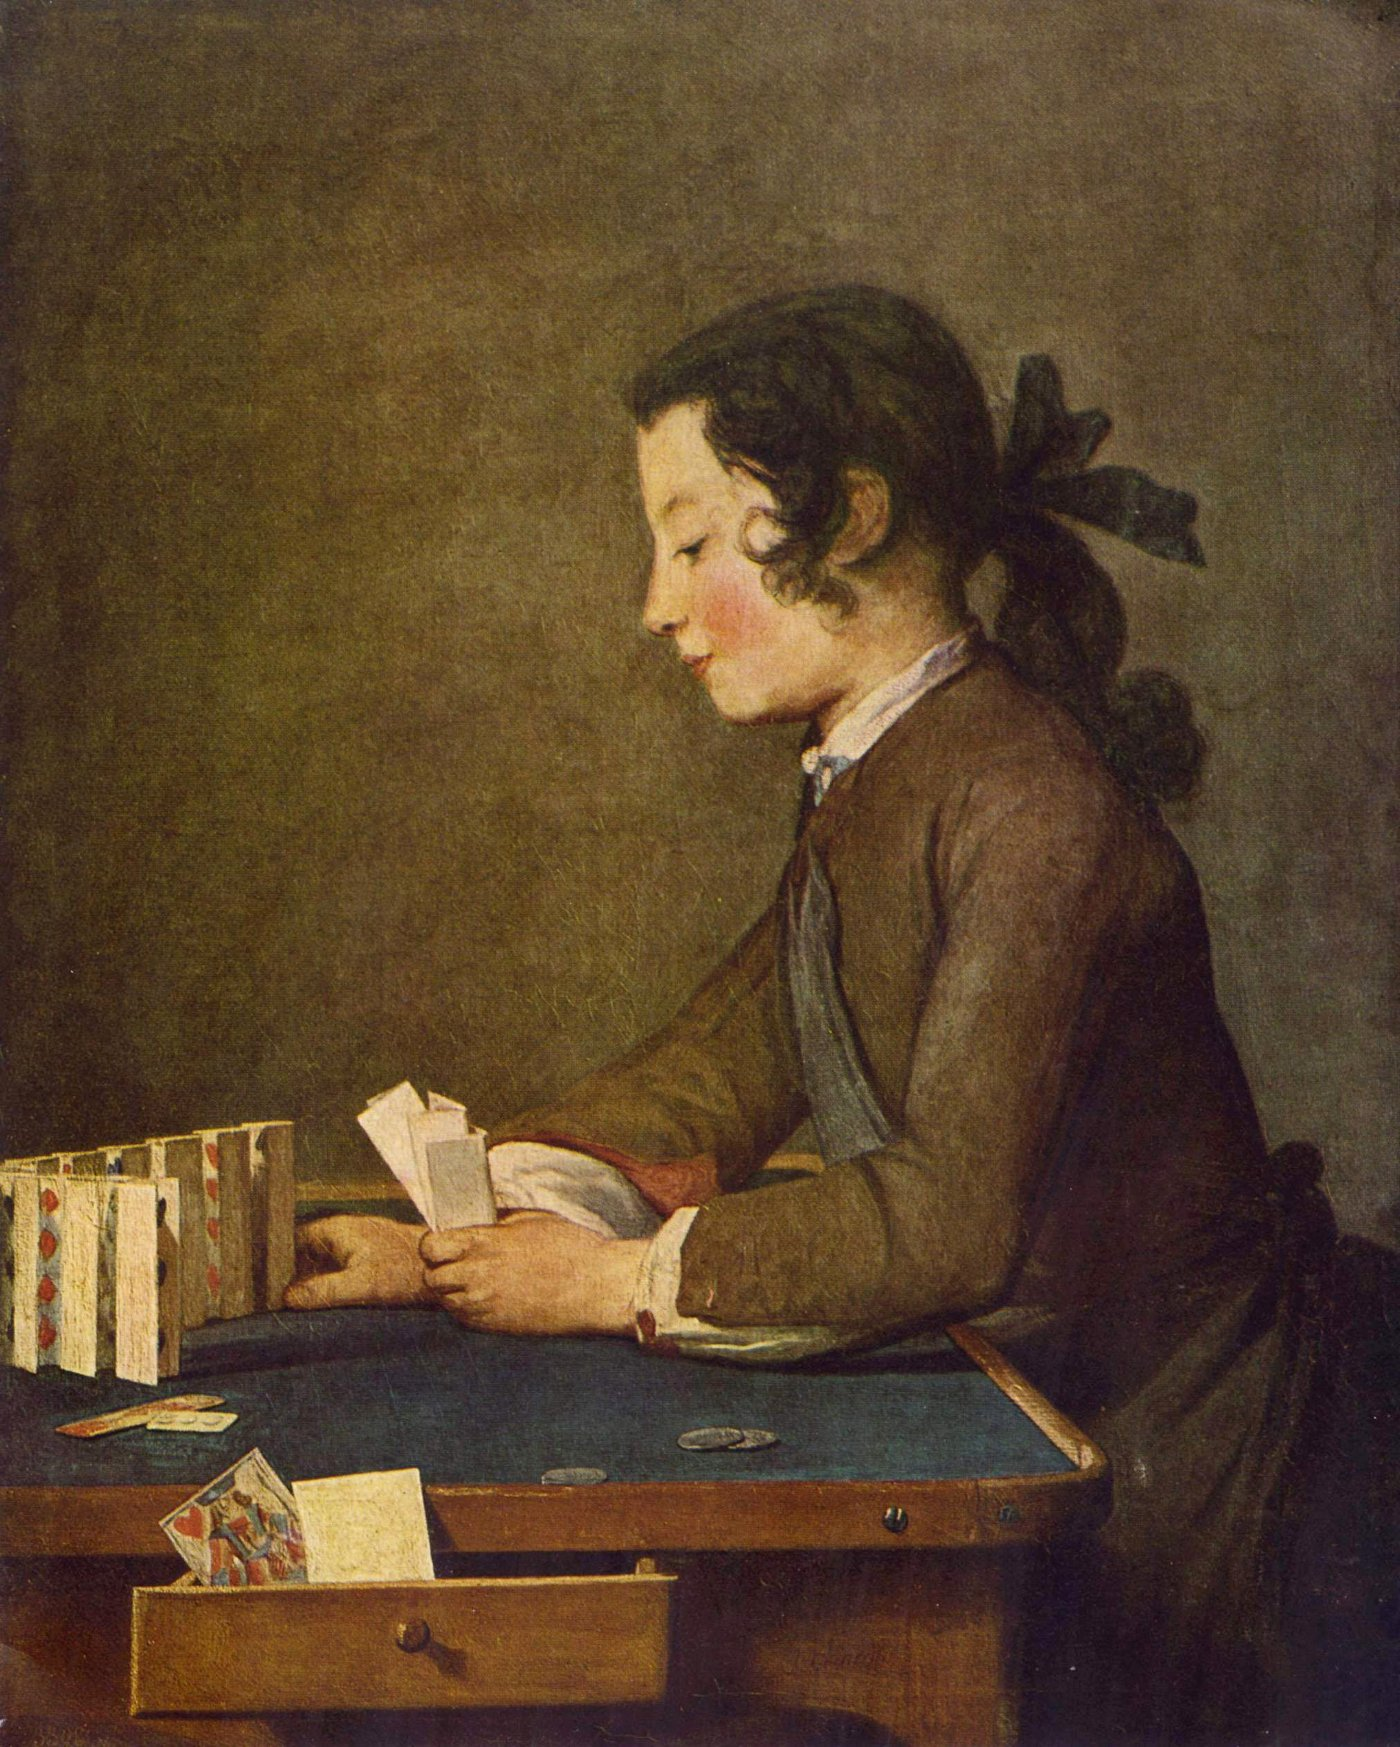 about 1740 - Boy playing Cards by Chardin